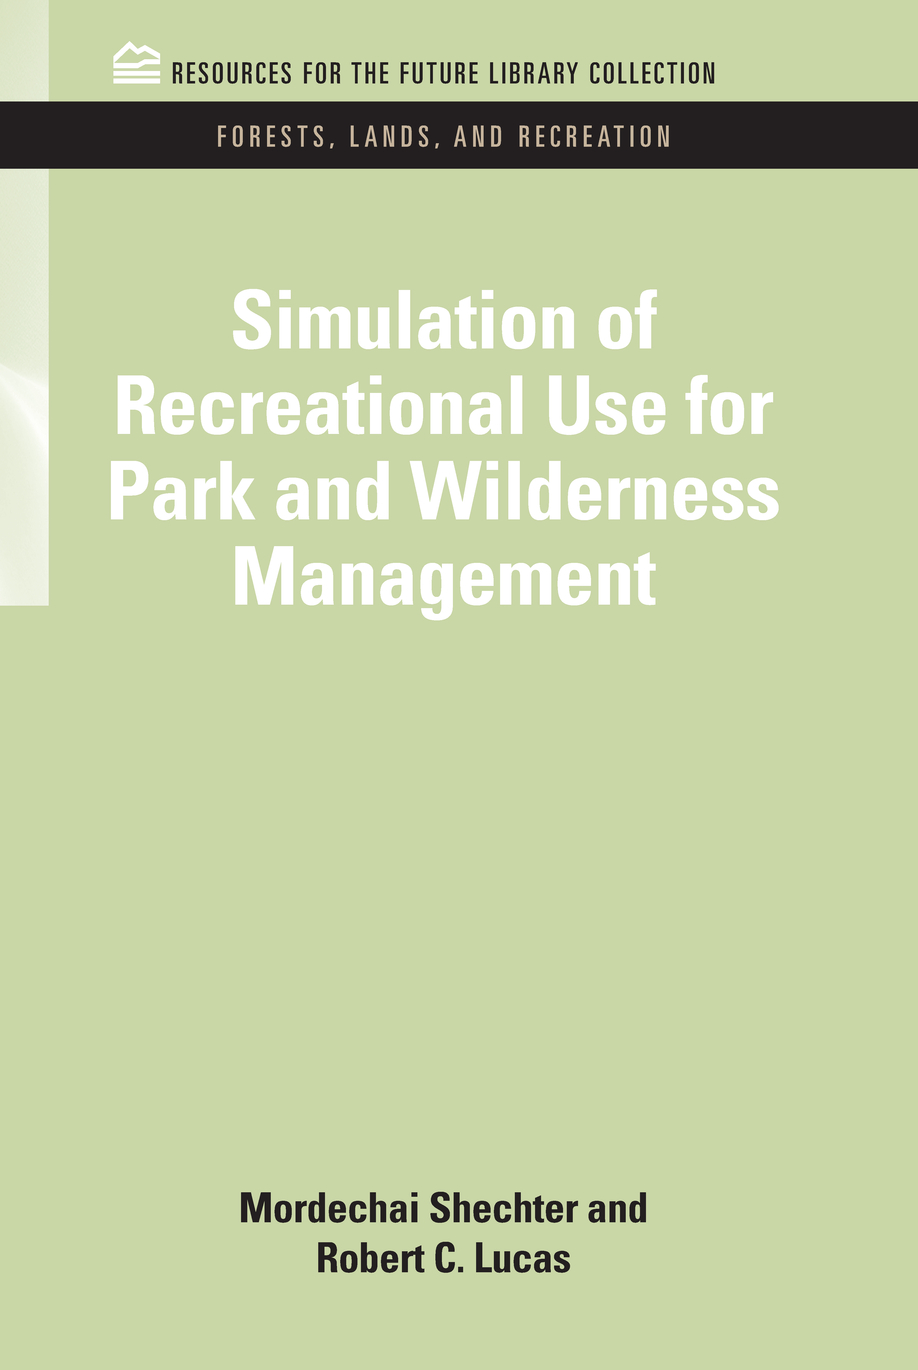 Simulation of Recreational Use for Park and Wilderness Management